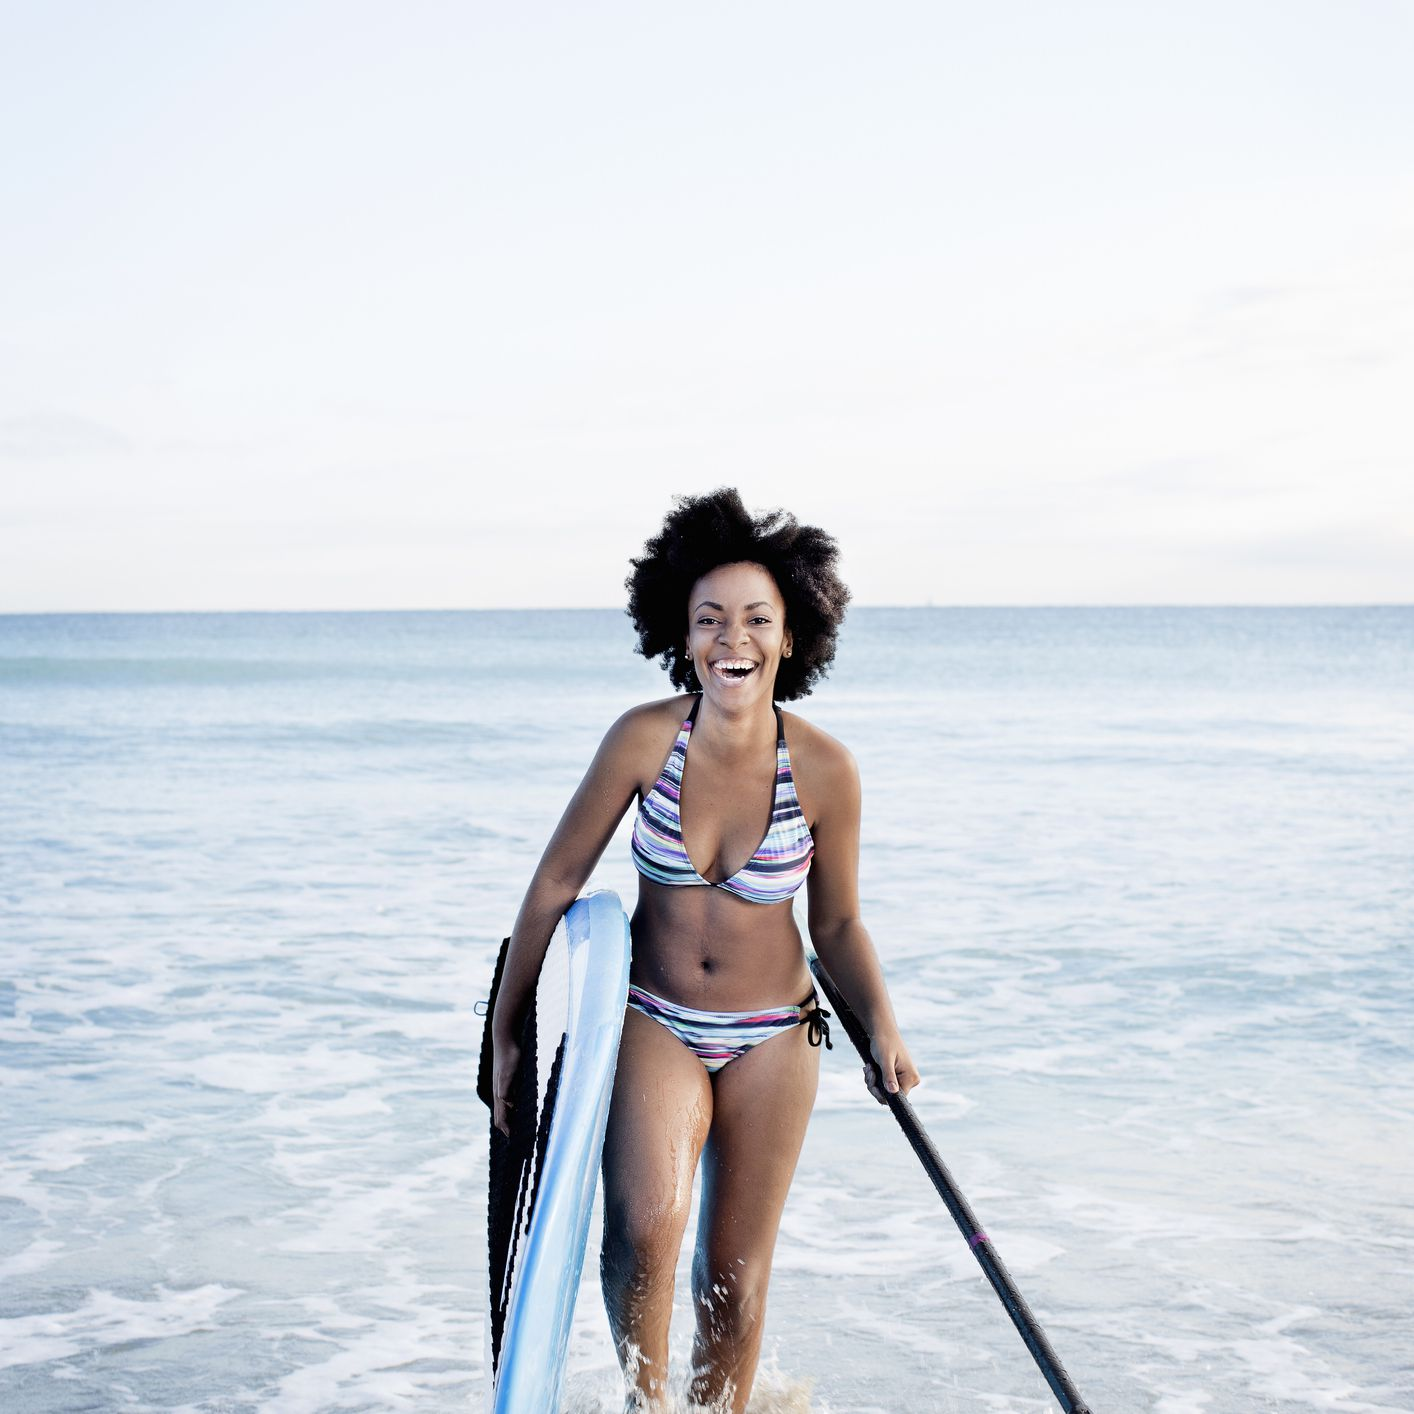 Black woman on beach with paddle board